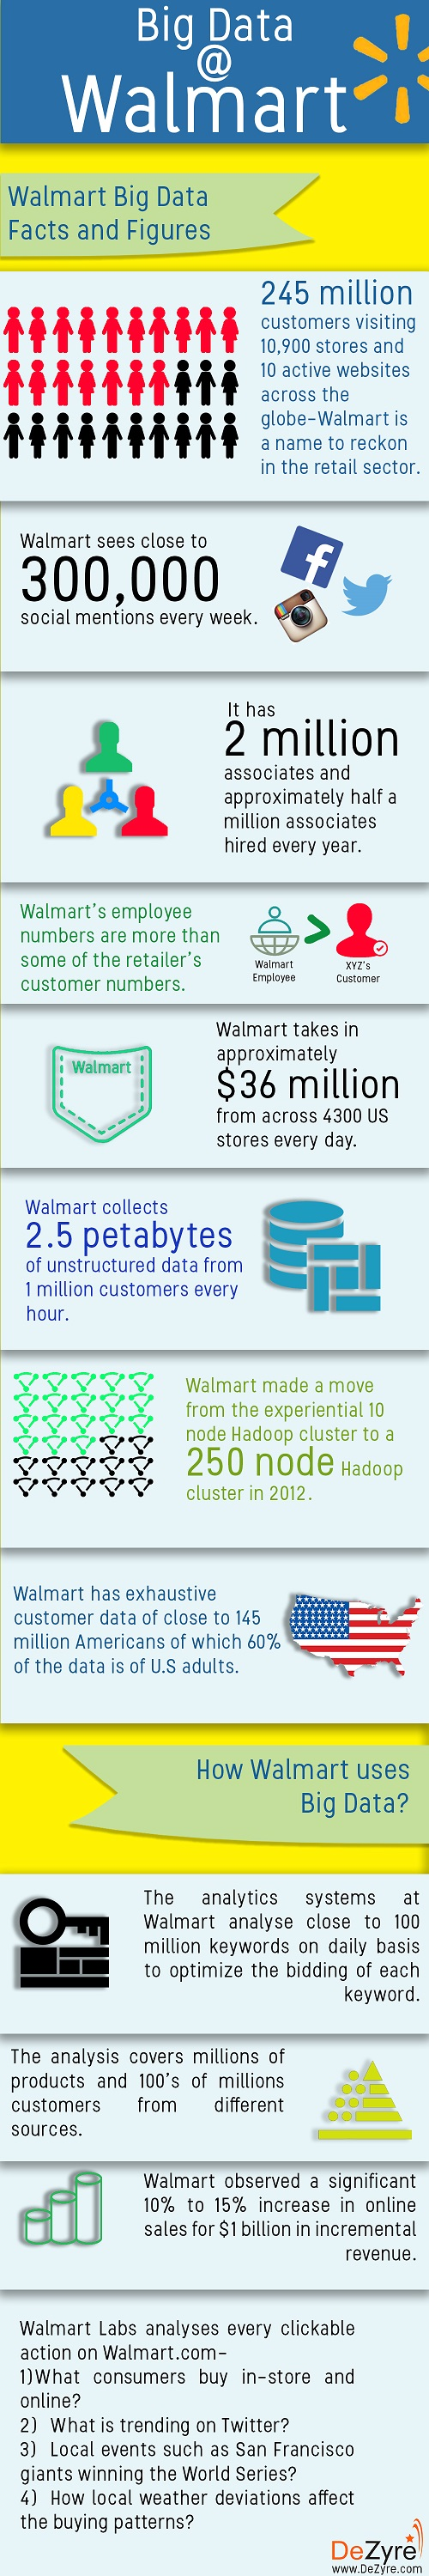 How Big Data Analysis helped increase Walmart's Sales turnover?